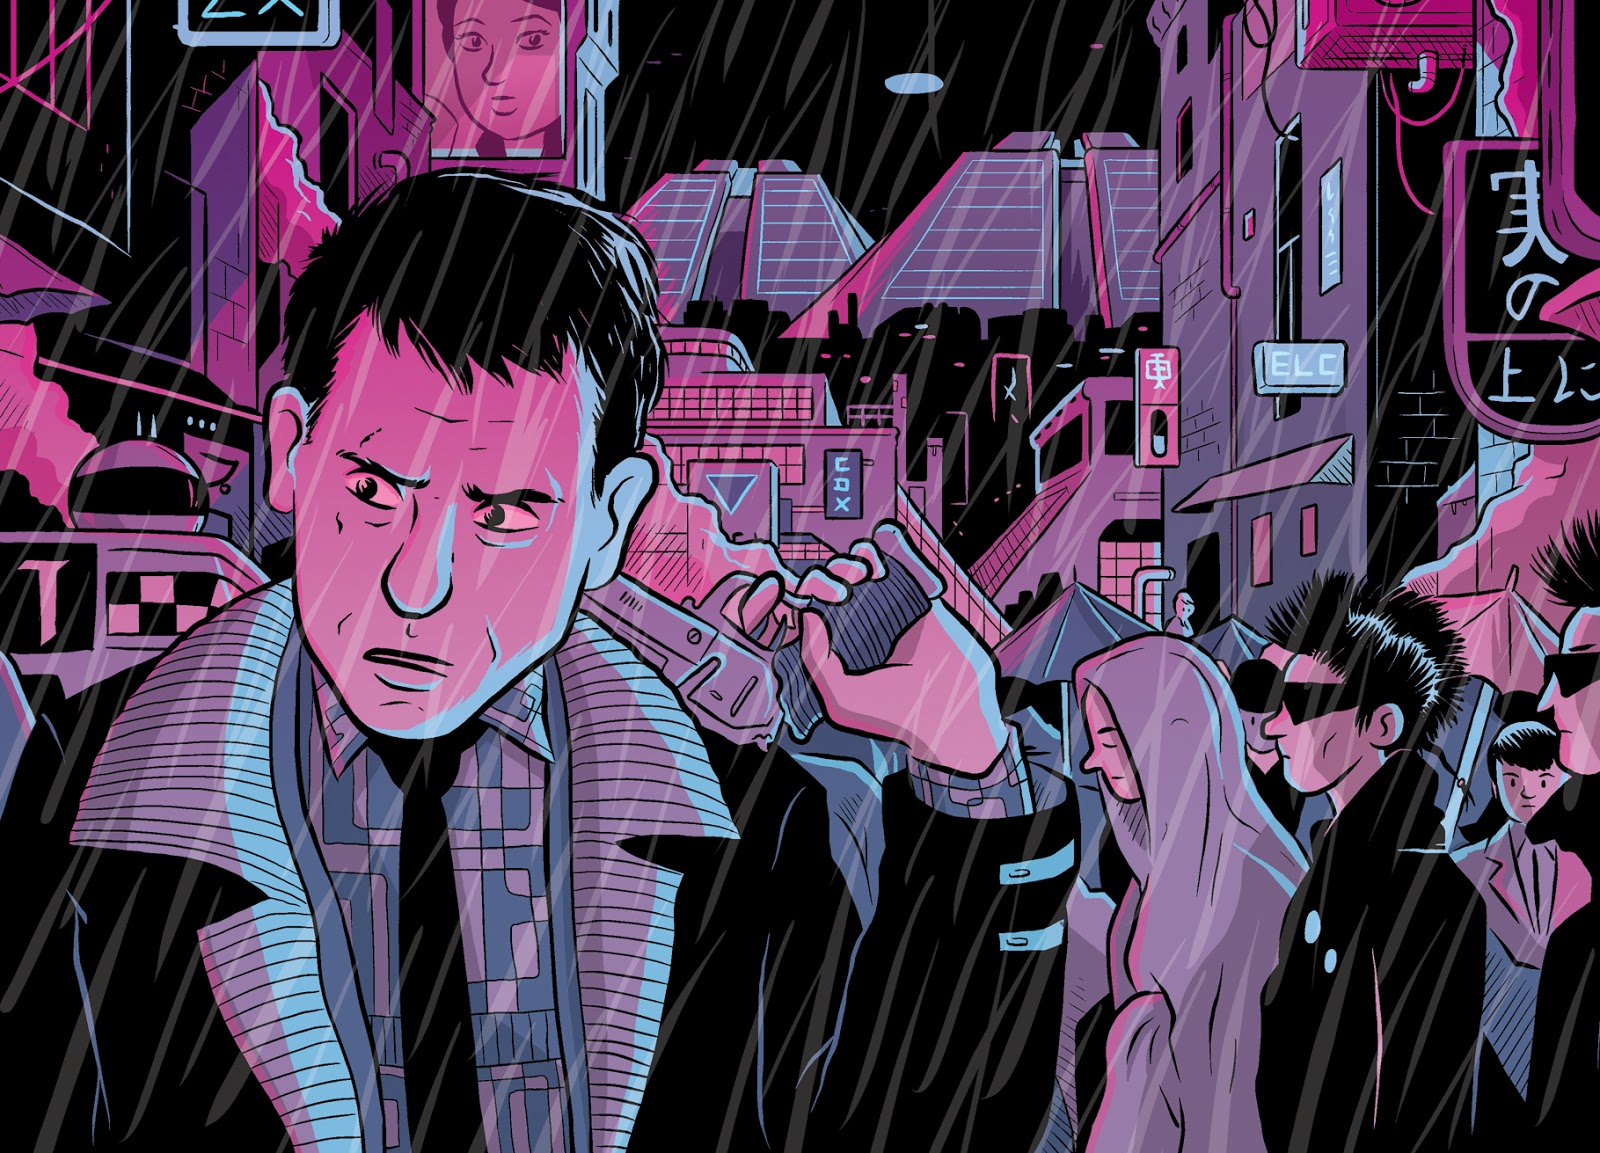 Blade Runner, as featured in Filmish - A Graphic Journey Through Film.